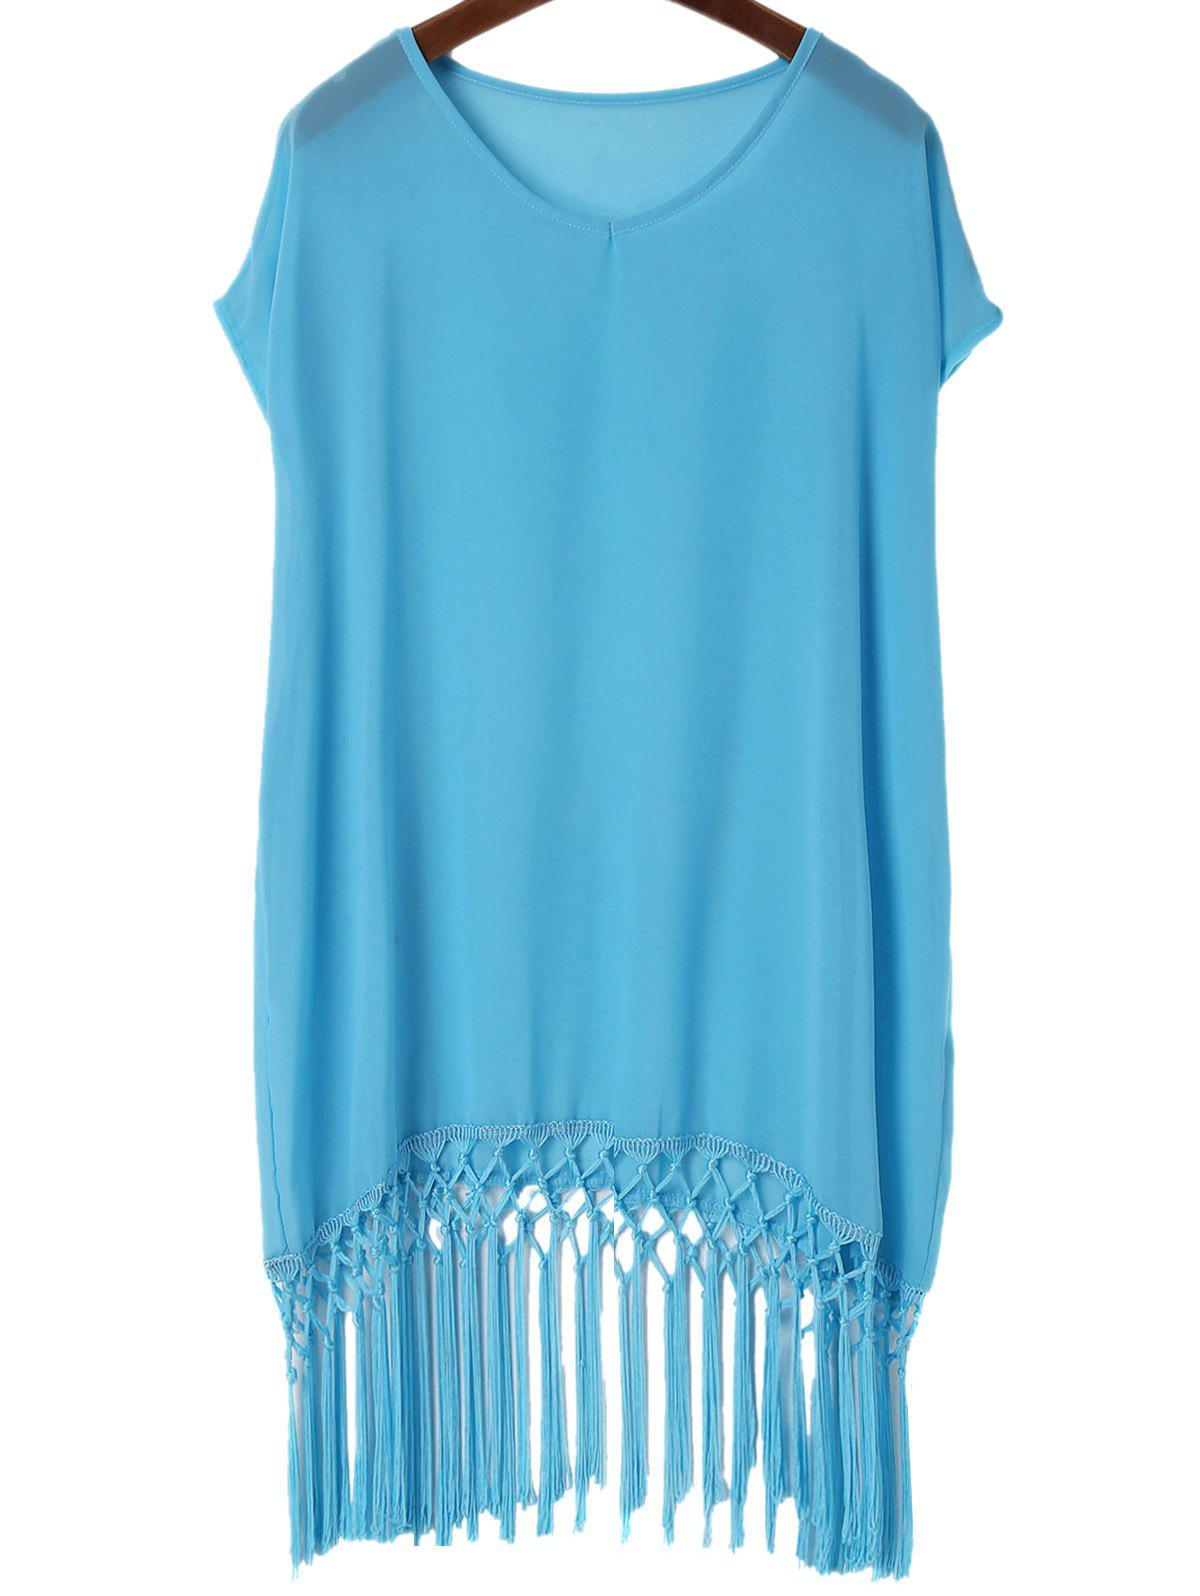 Fashionable V-Neck Solid Color Tassel Spliced Short Sleeve Women's Cover-Up - BLUE ONE SIZE(FIT SIZE XS TO M)